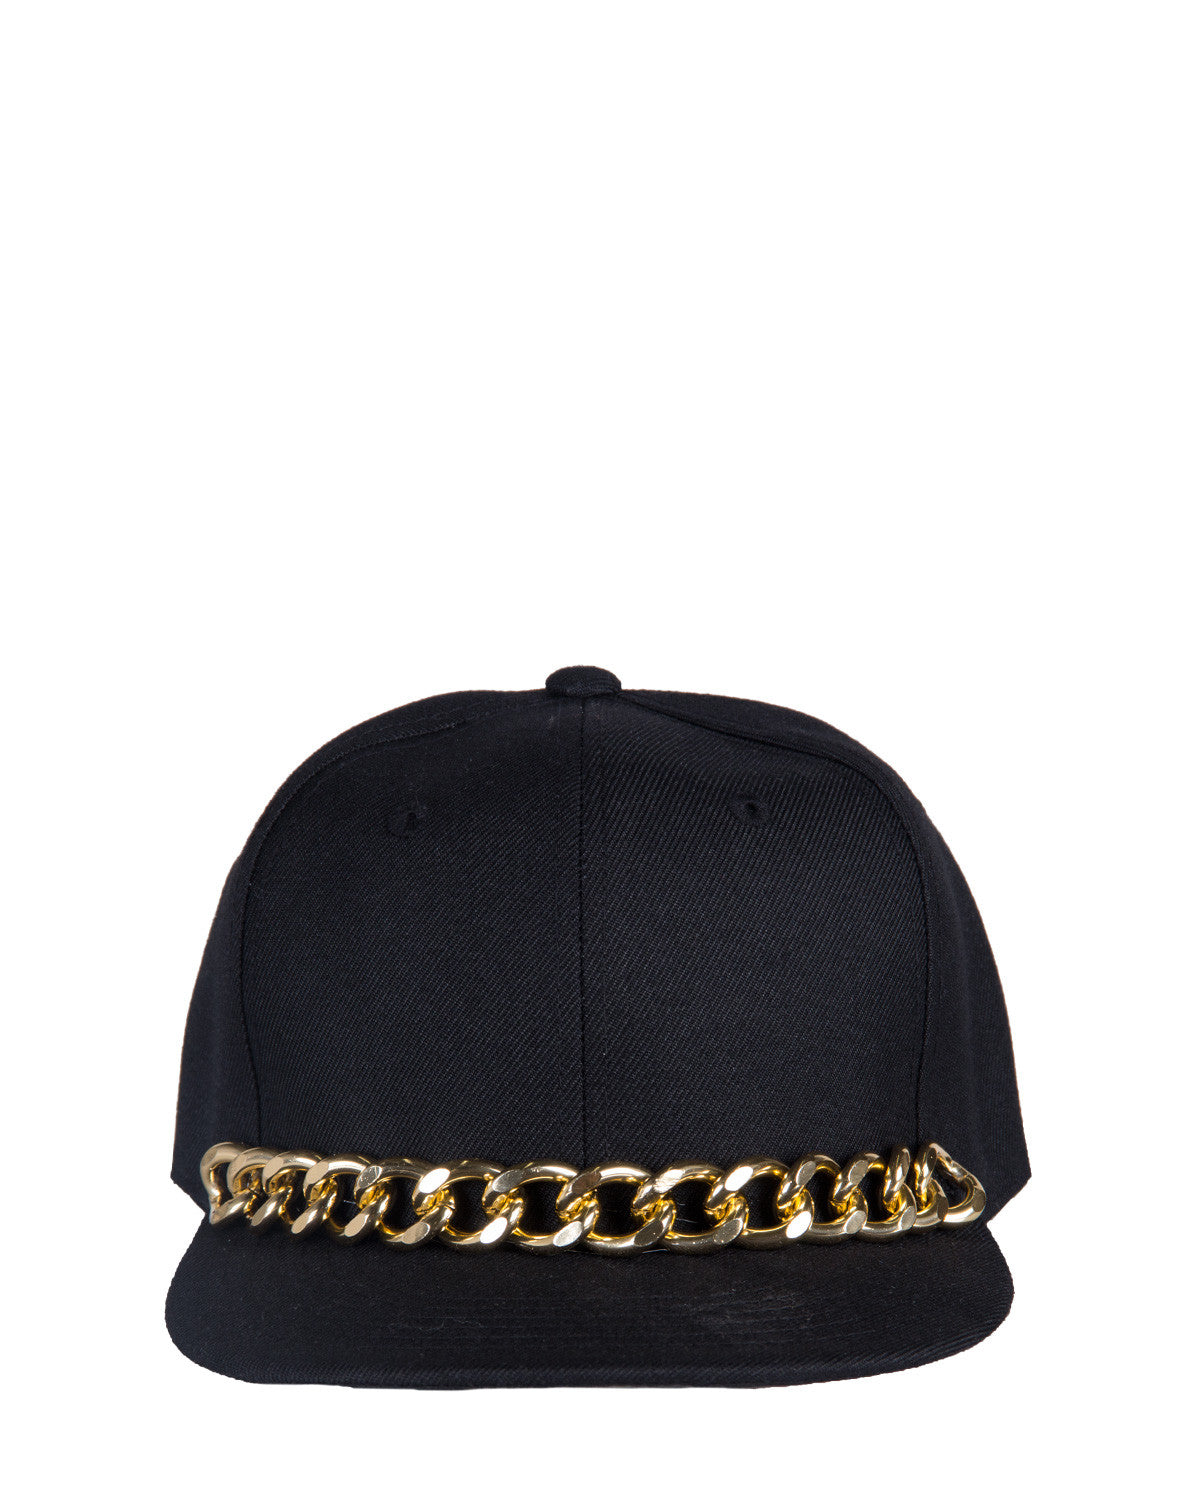 Golden Chained Snapback